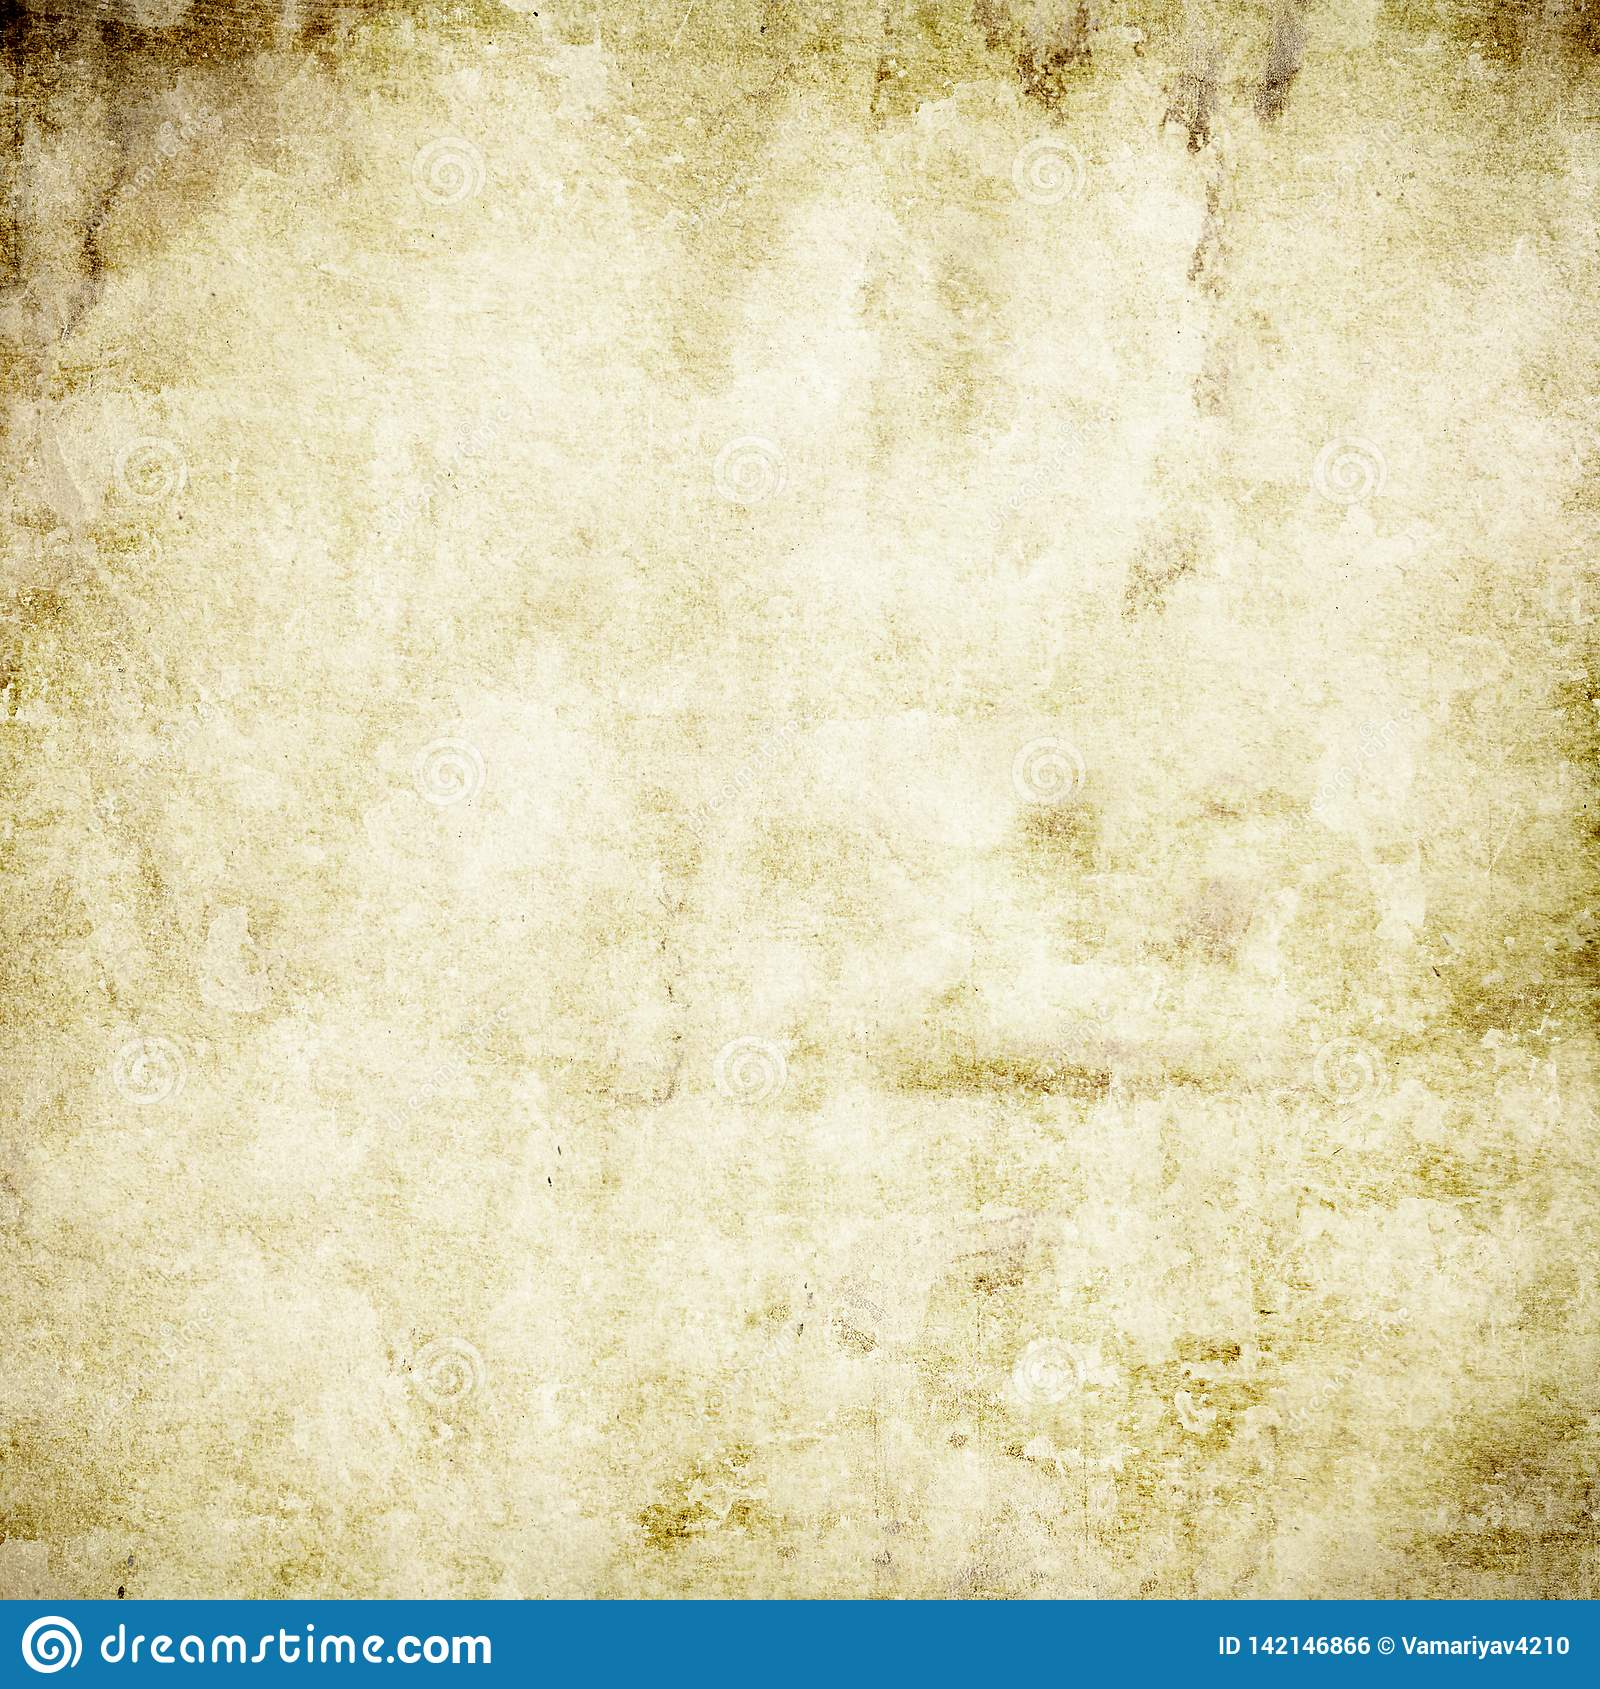 Vintage Old Paper Background, Paper Texture, Rough, Rough, Spots, Grunge,  Retro, Beige, Brown Stock Illustration - Illustration of design, rough:  142146866